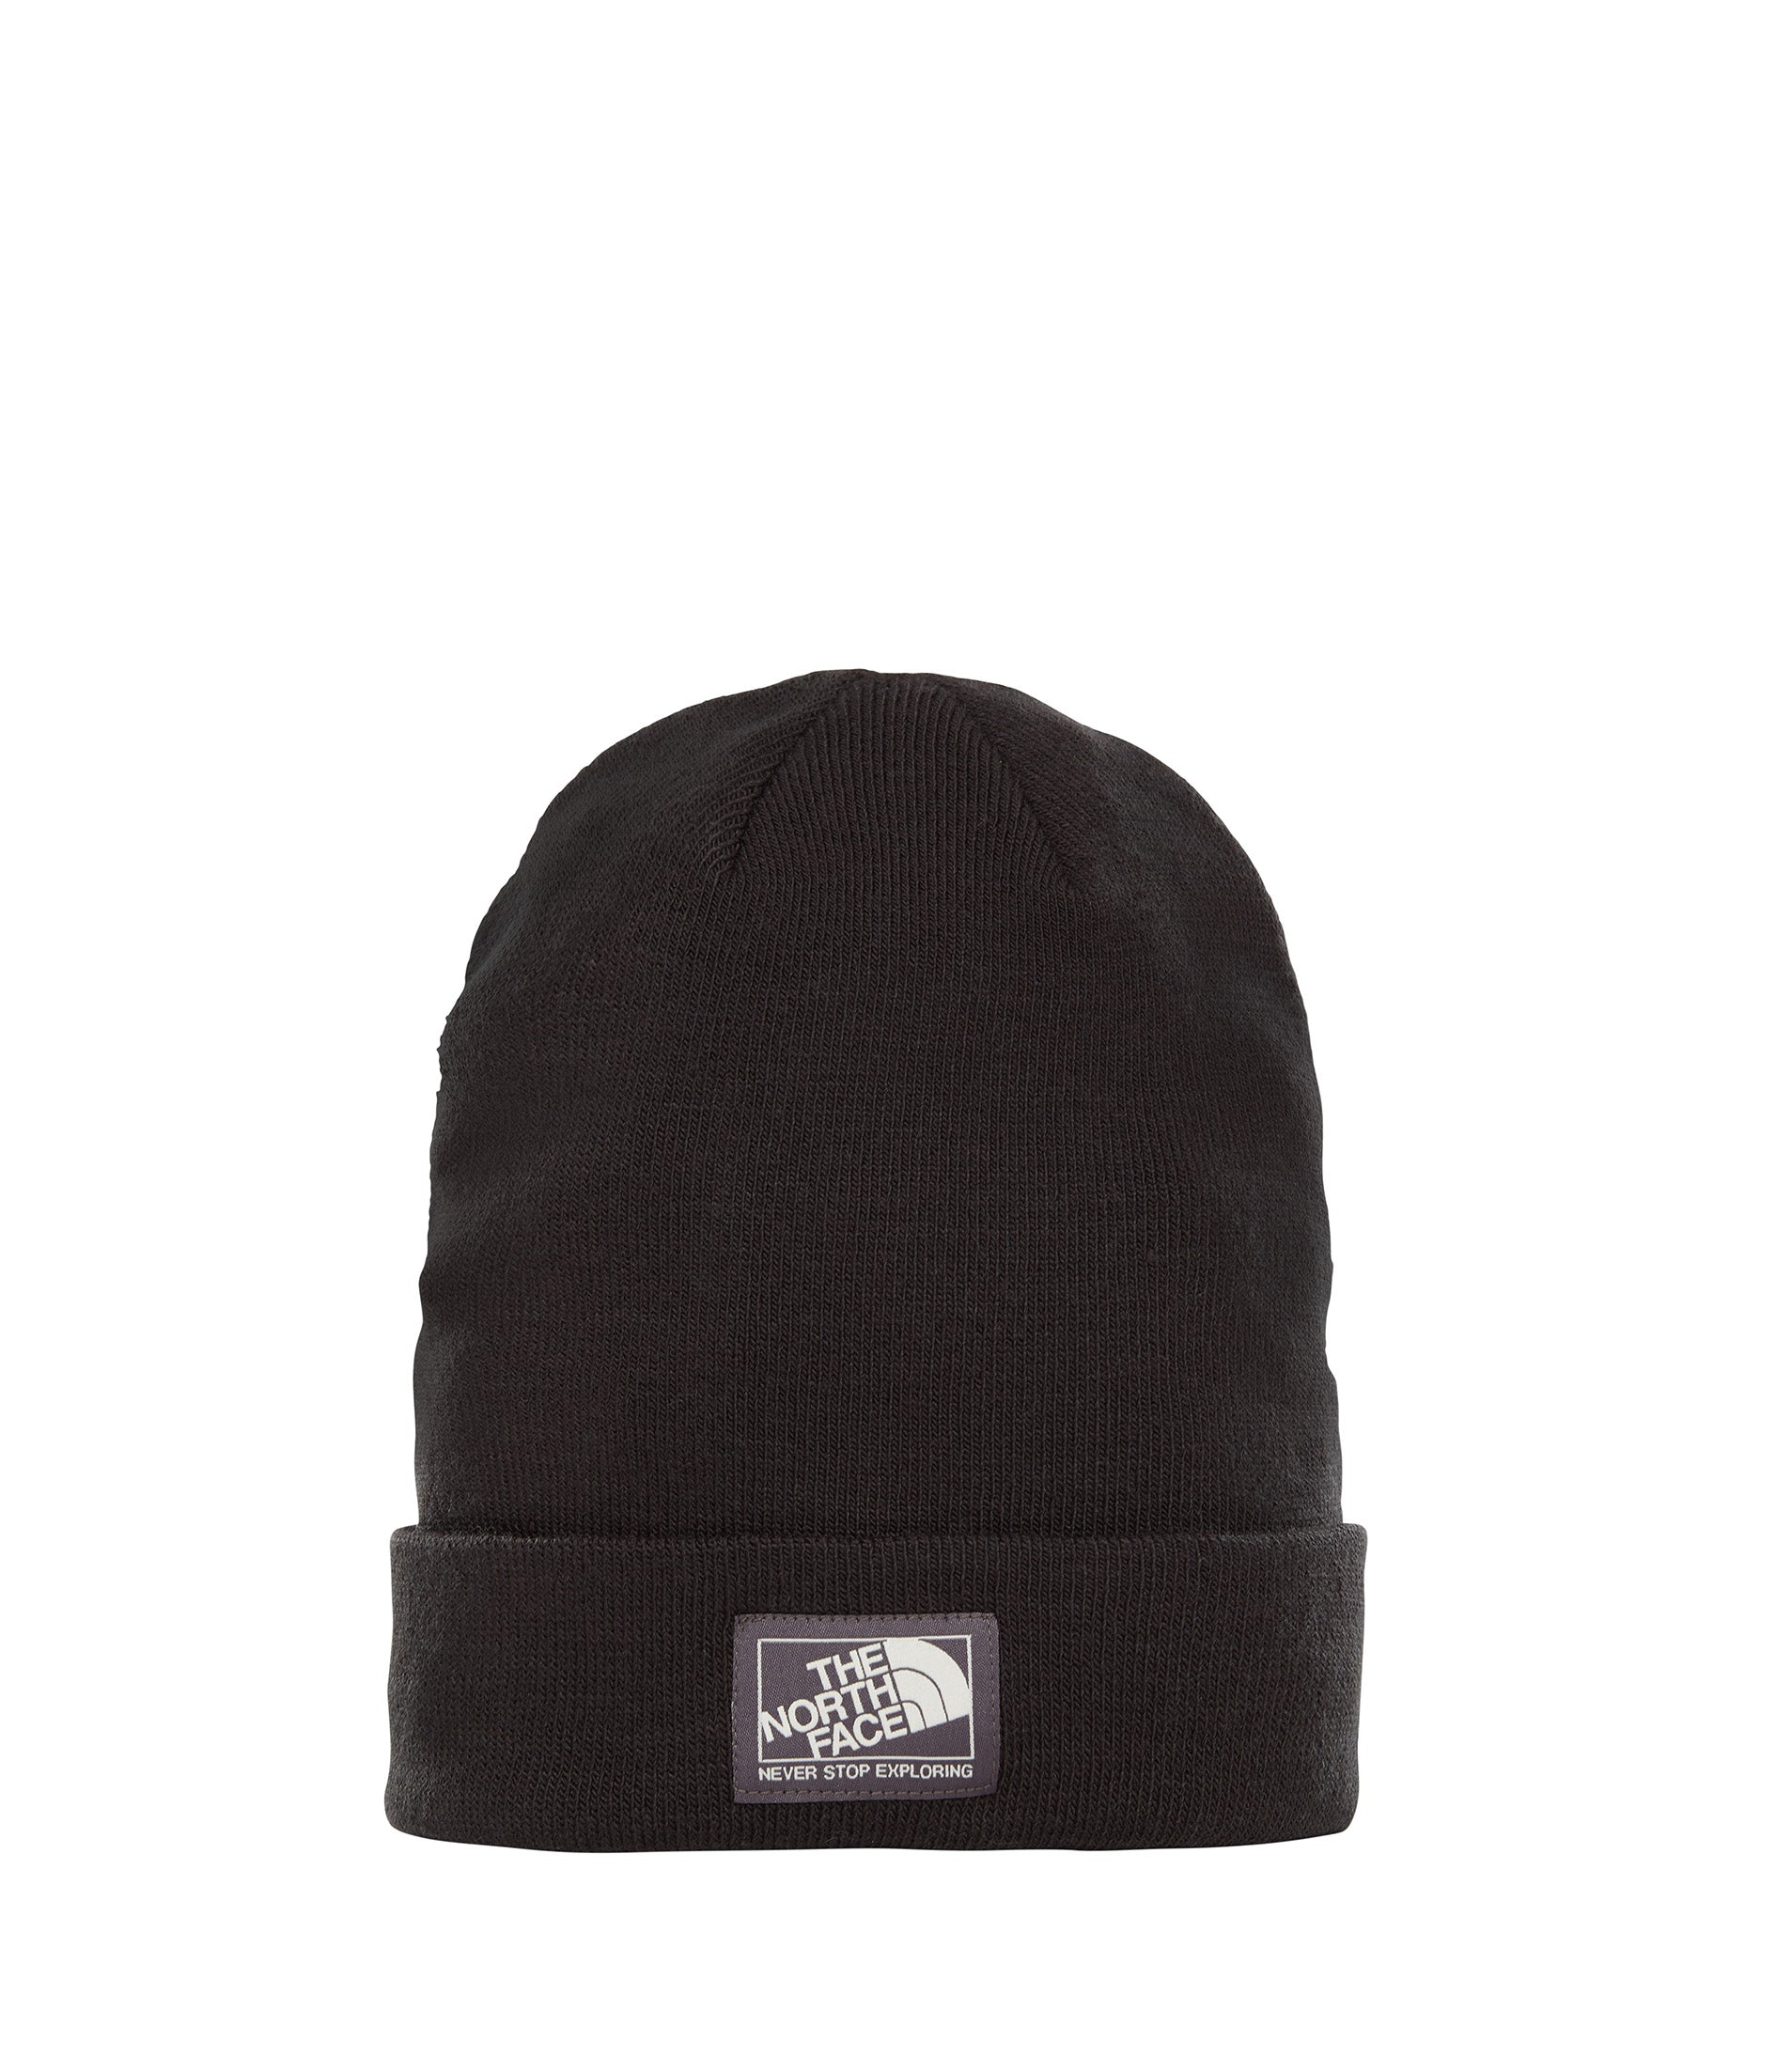 The North Face Dock Worker Recycled Beanie 2020 thumbnail